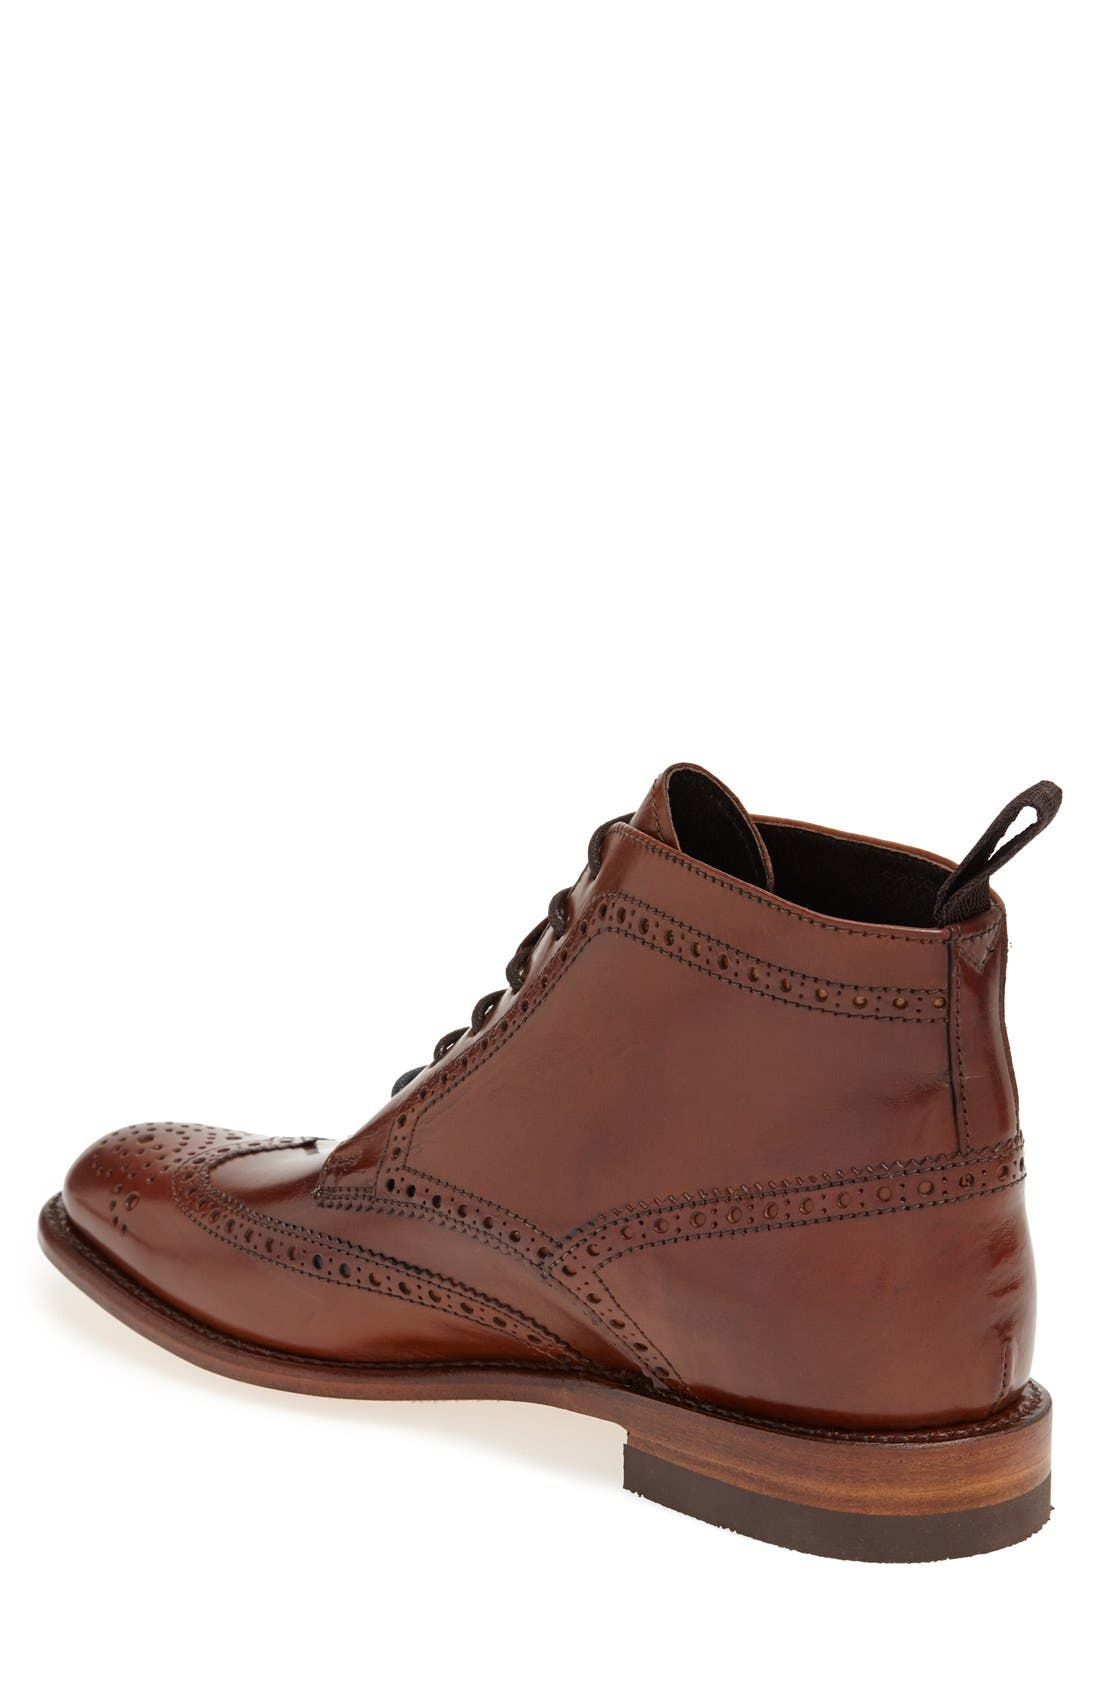 'Newport' Wingtip Boot,                             Alternate thumbnail 2, color,                             COGNAC